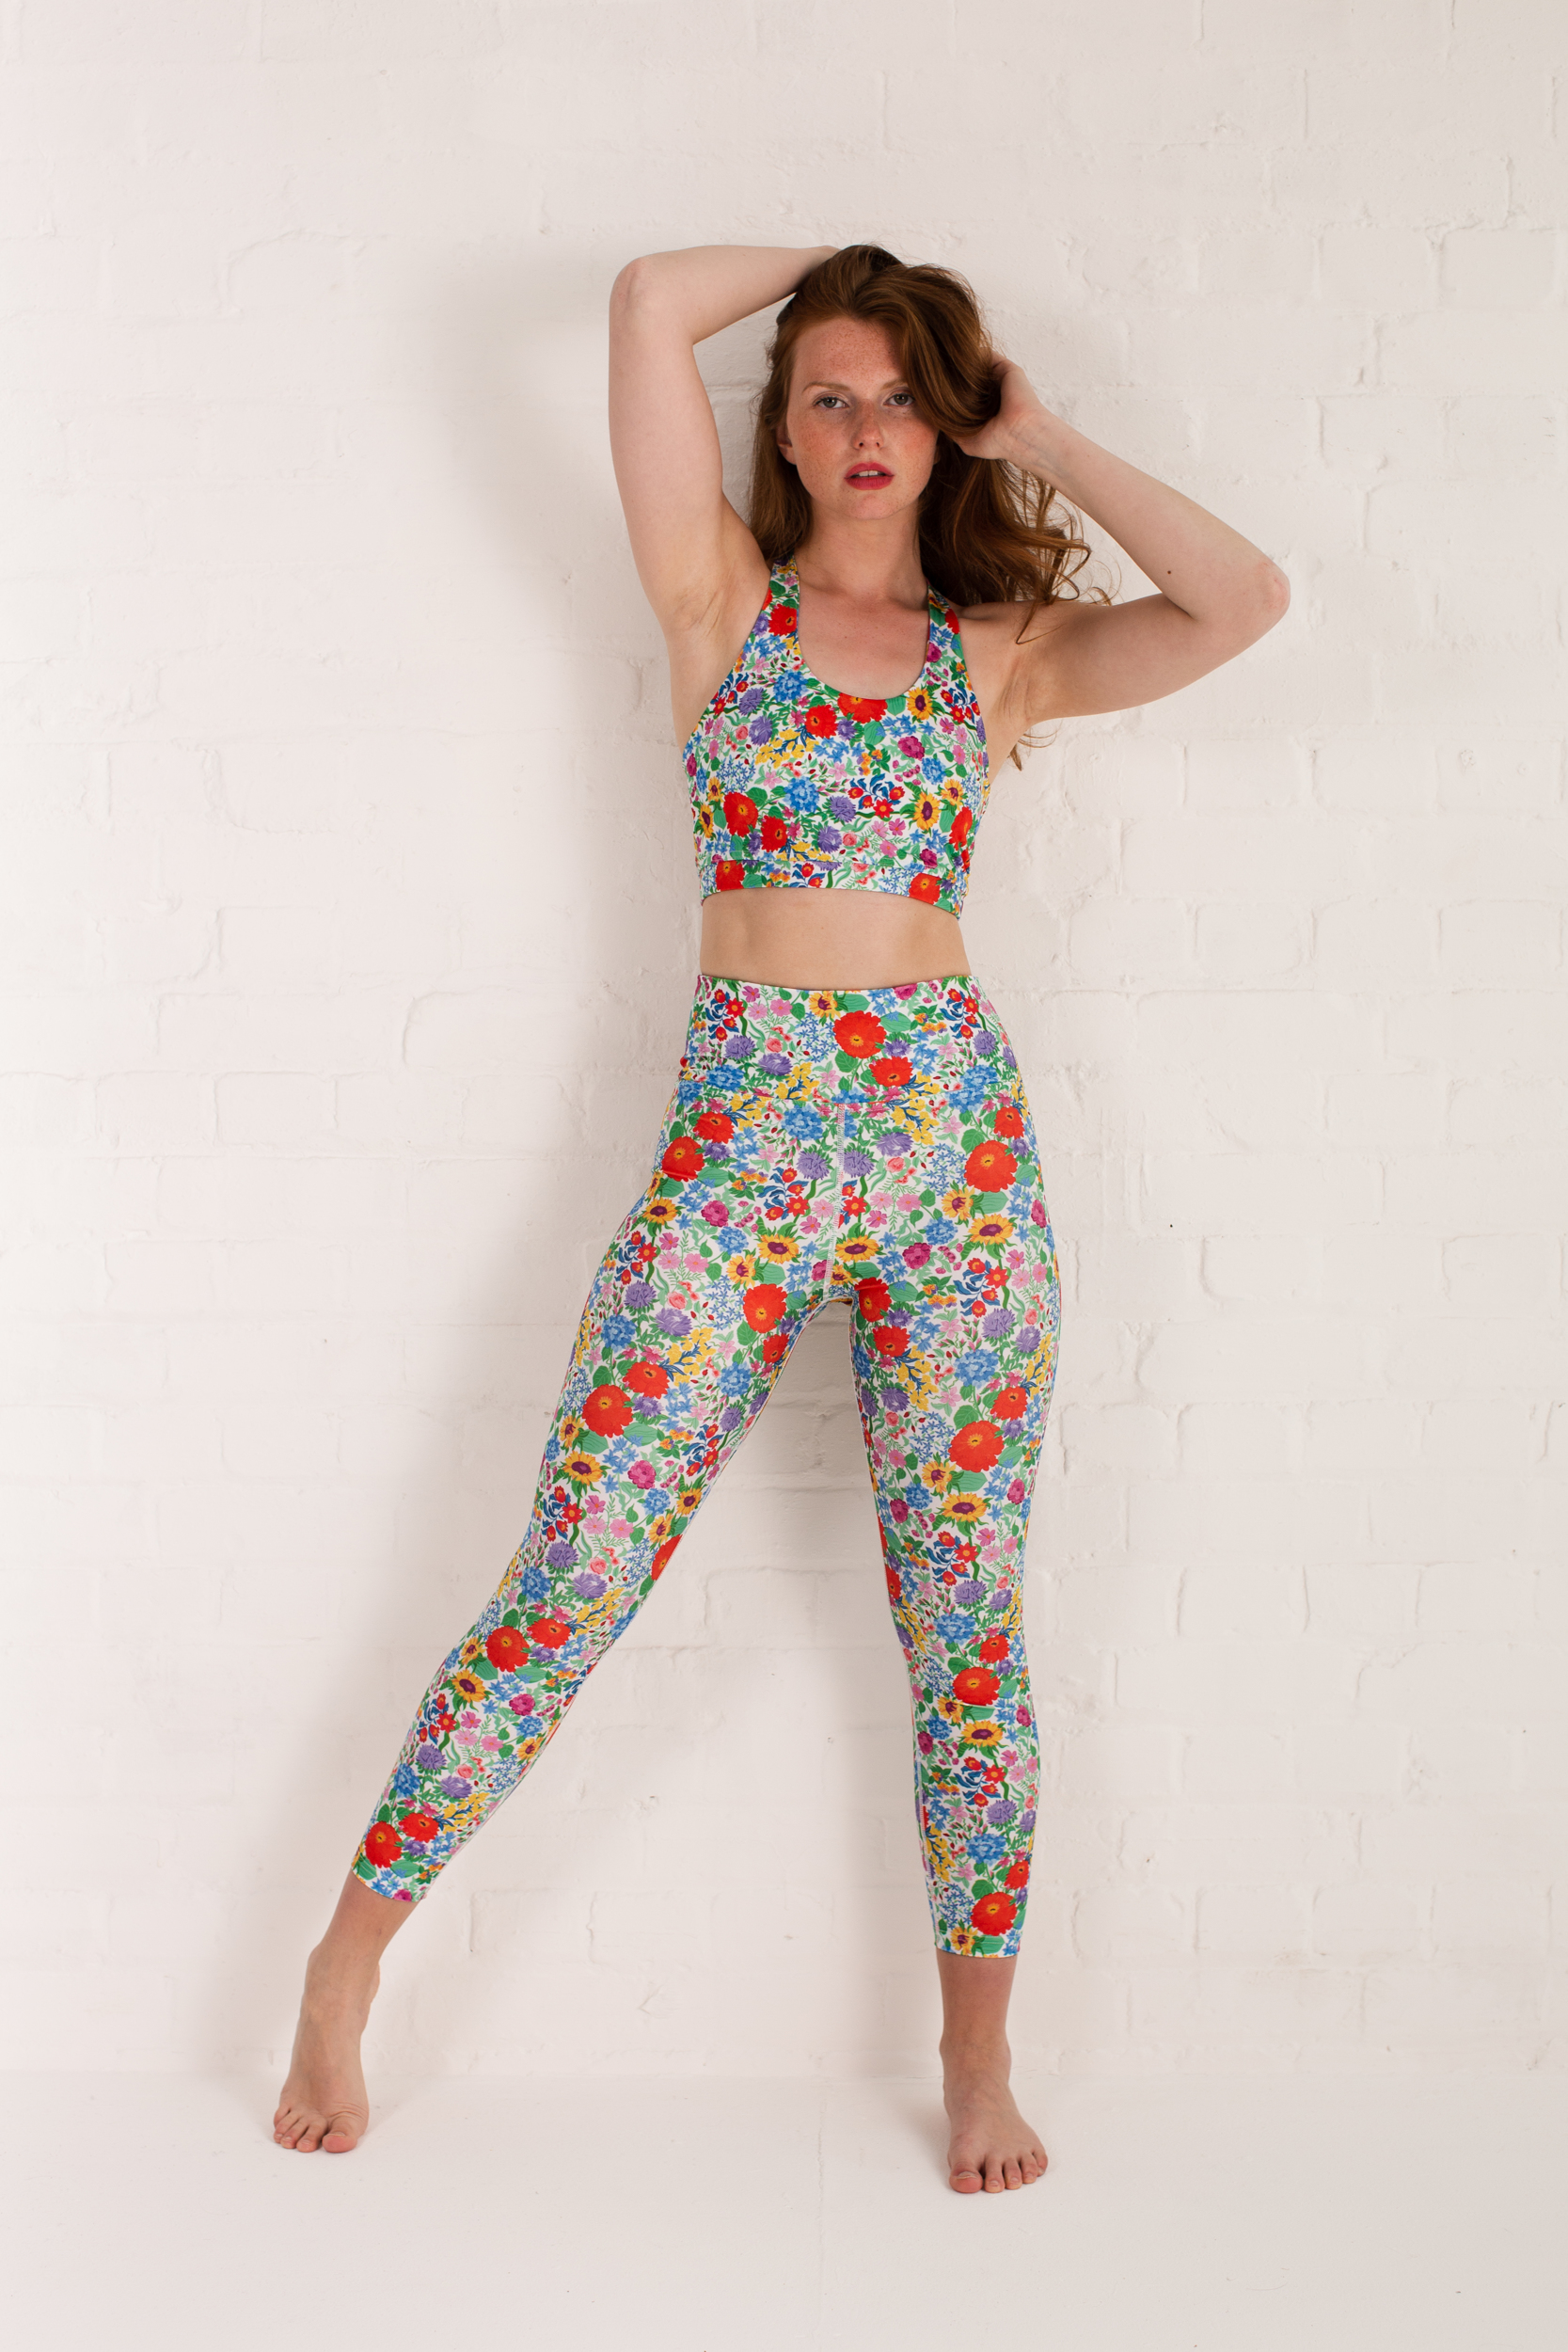 recycled high waist 7/8 yoga leggings and sports bra floral